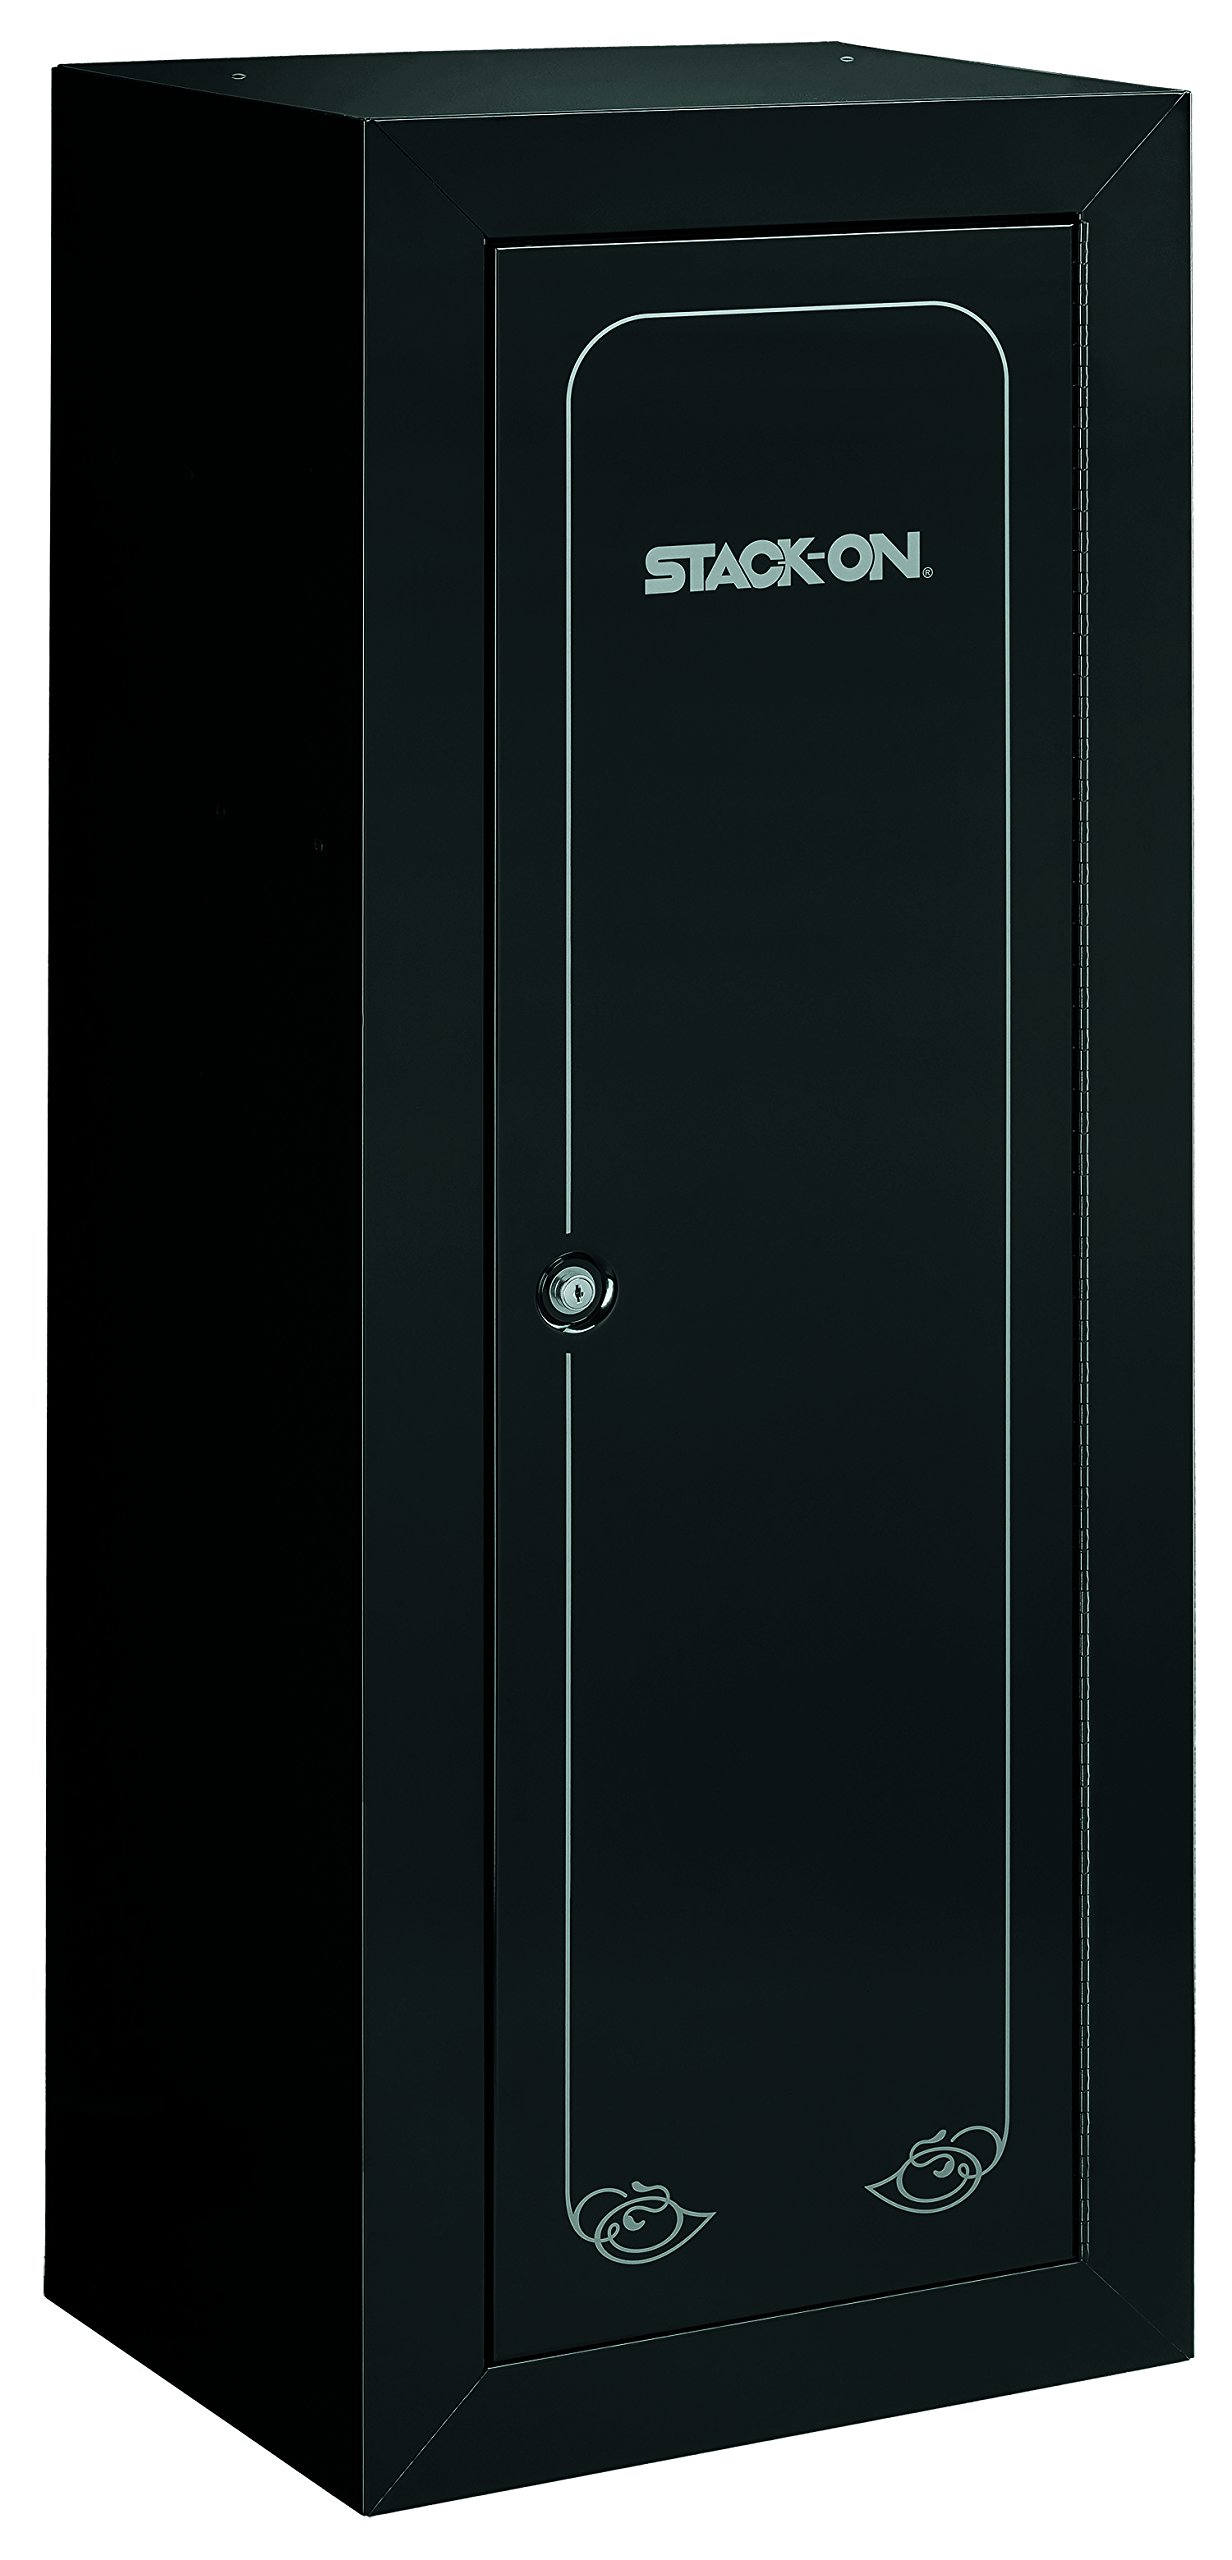 Stack-On GCB-1522 Steel 22-Gun Security Gun Cabinet with Foam Barrel Rests, Black by Stack-On